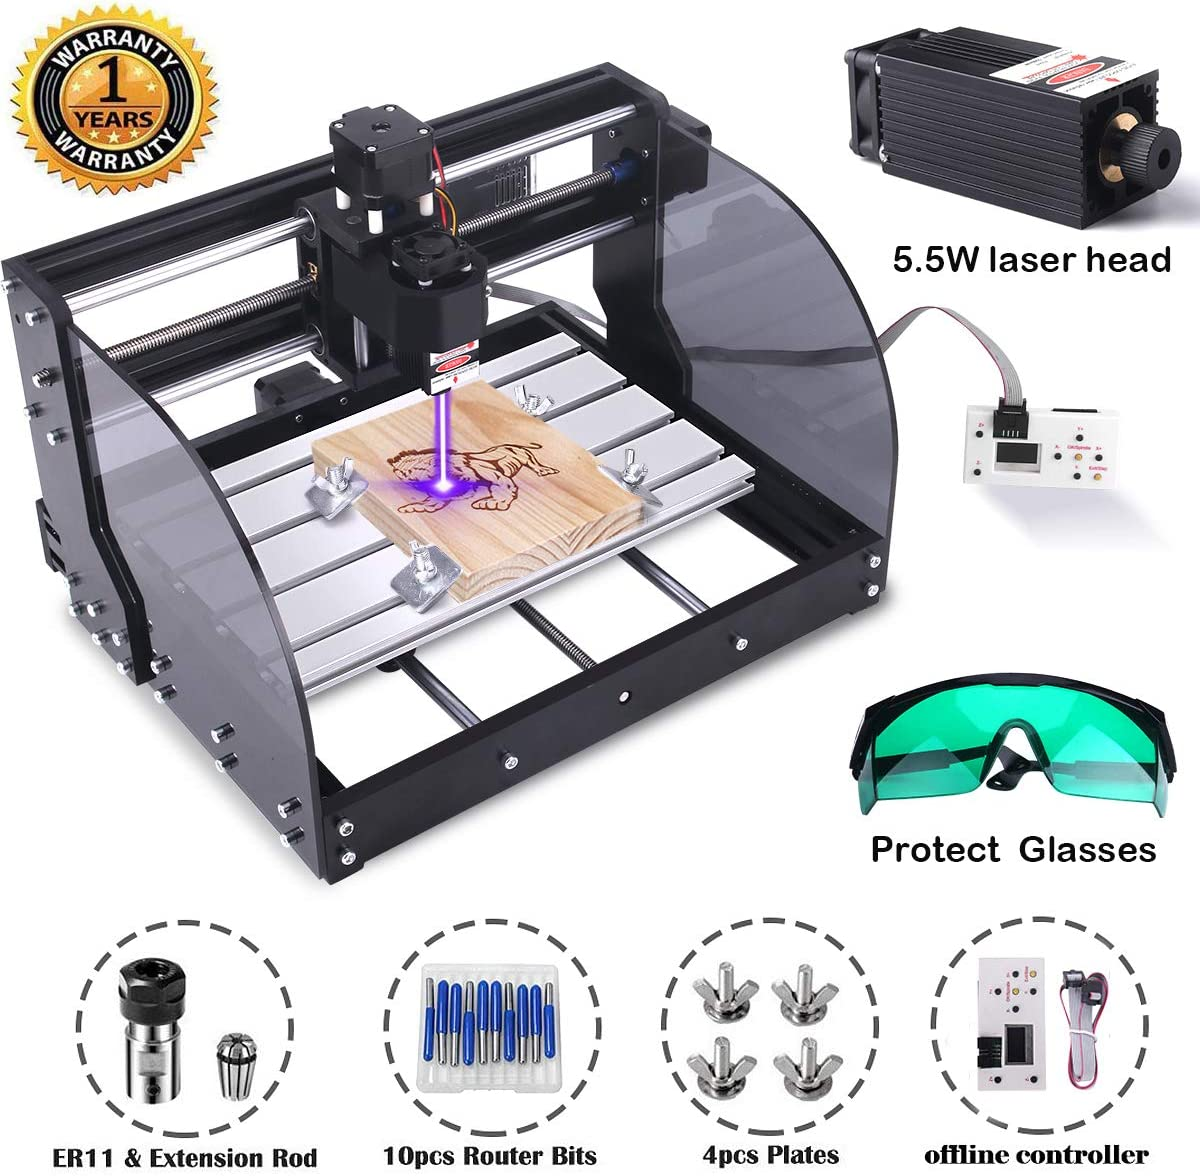 MYSWEETY DIY CNC 3018PRO-M 3 Axis CNC Router Kit with 5500mW 5.5W Module + PCB Milling, Wood Carving Engraving Machine with Offline Control Board + ER11 and 5mm Extension Rod